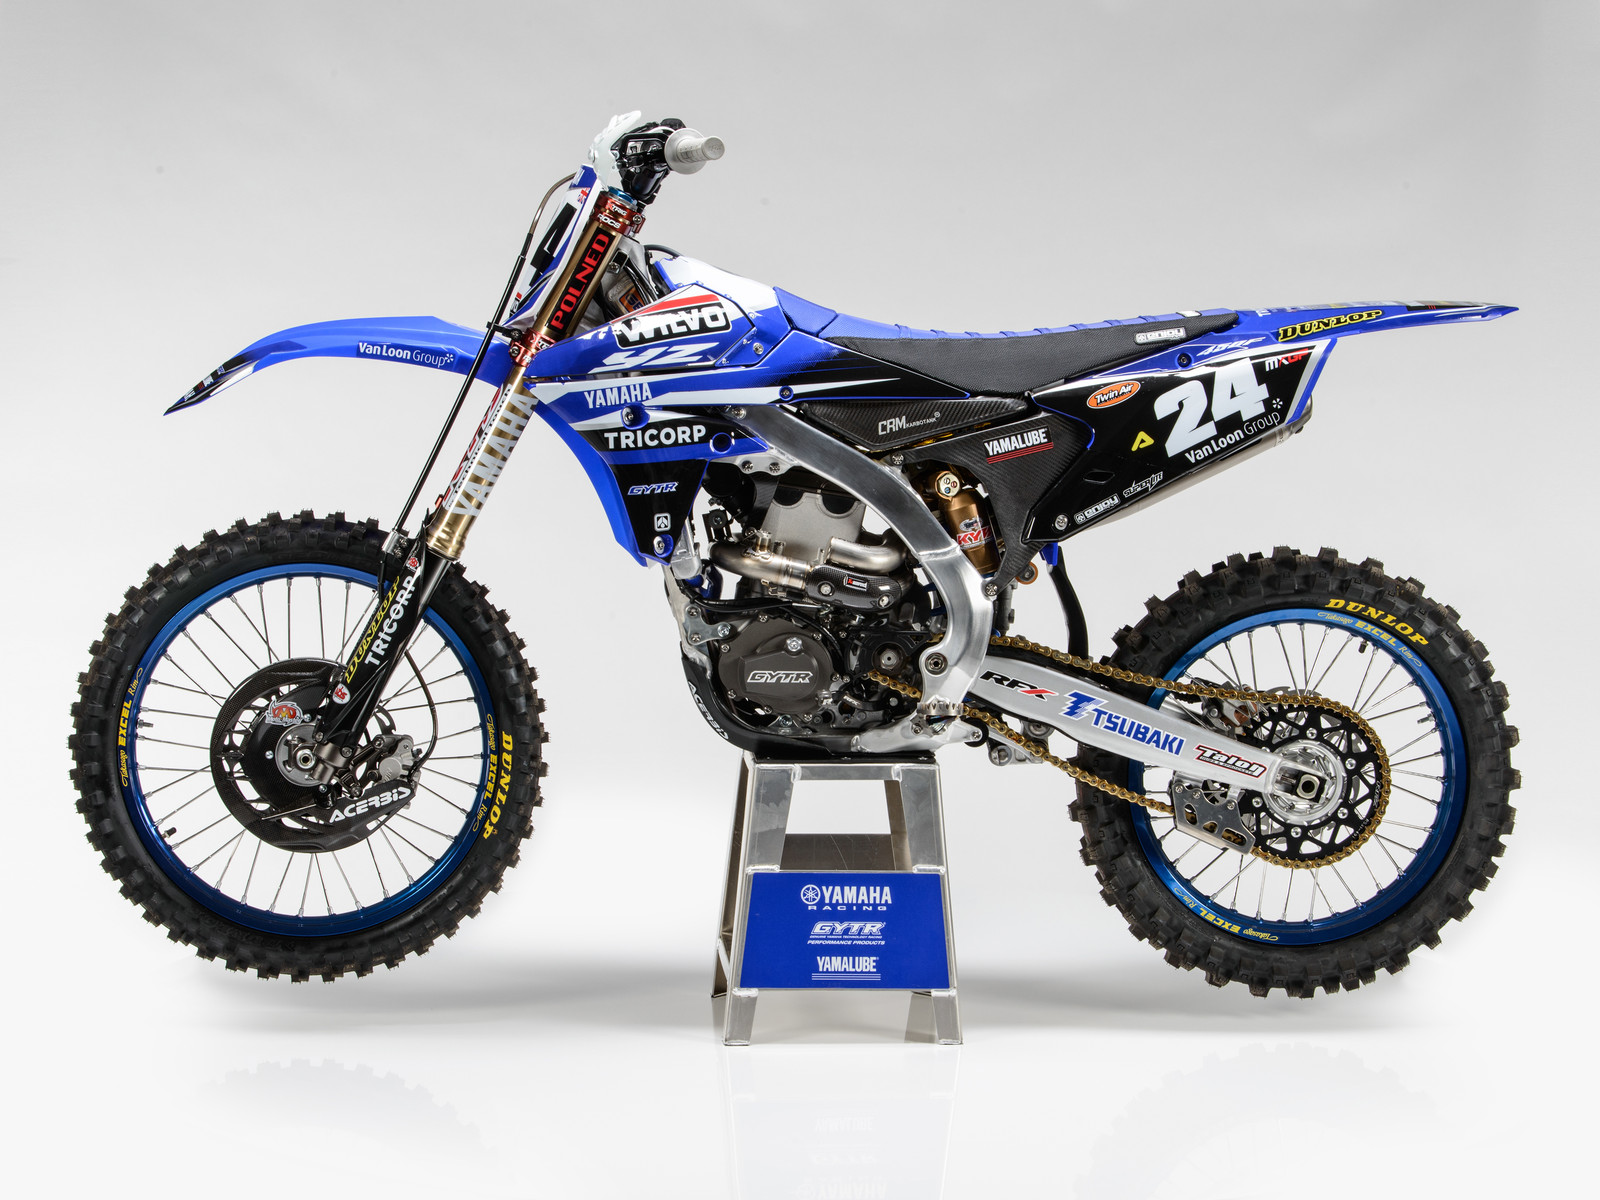 Shaun Simpson's 2017 WILVO Yamaha YZ450FM - First Look: 2017 Monster Energy & Wilvo Yamaha MXGP Teams - Motocross Pictures - Vital MX